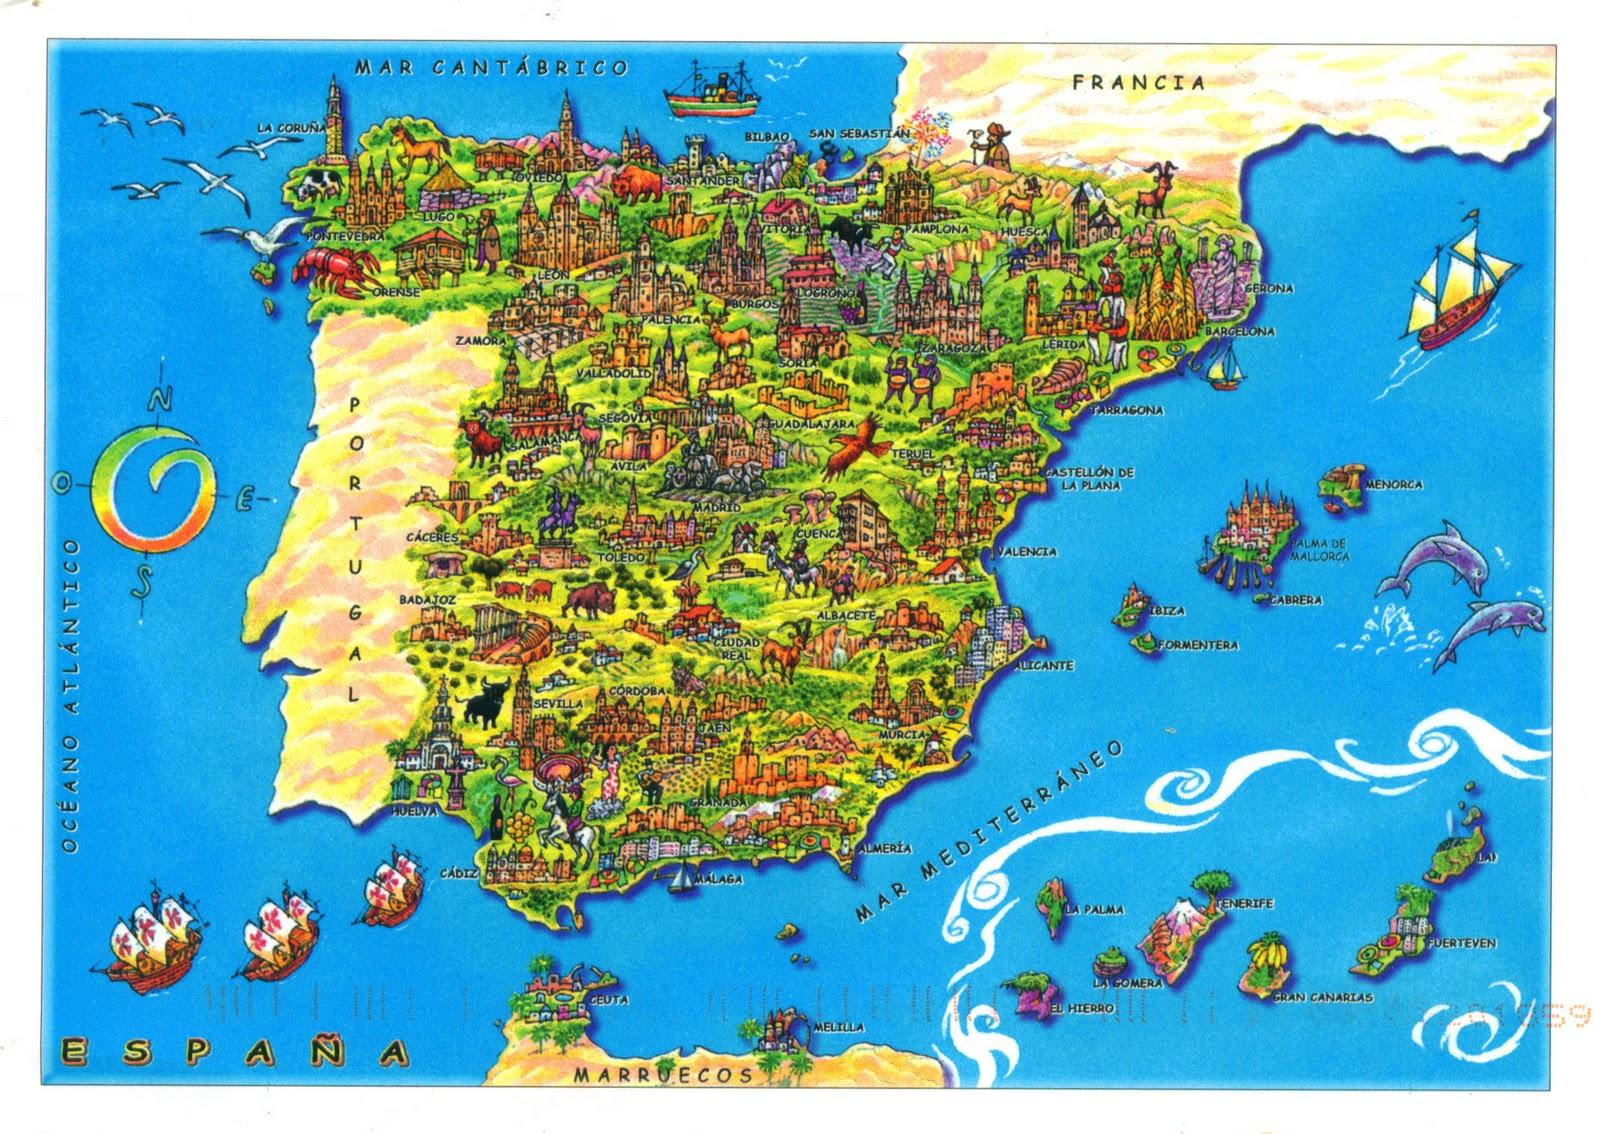 Spain tourist attractions map Spain map tourist attractions